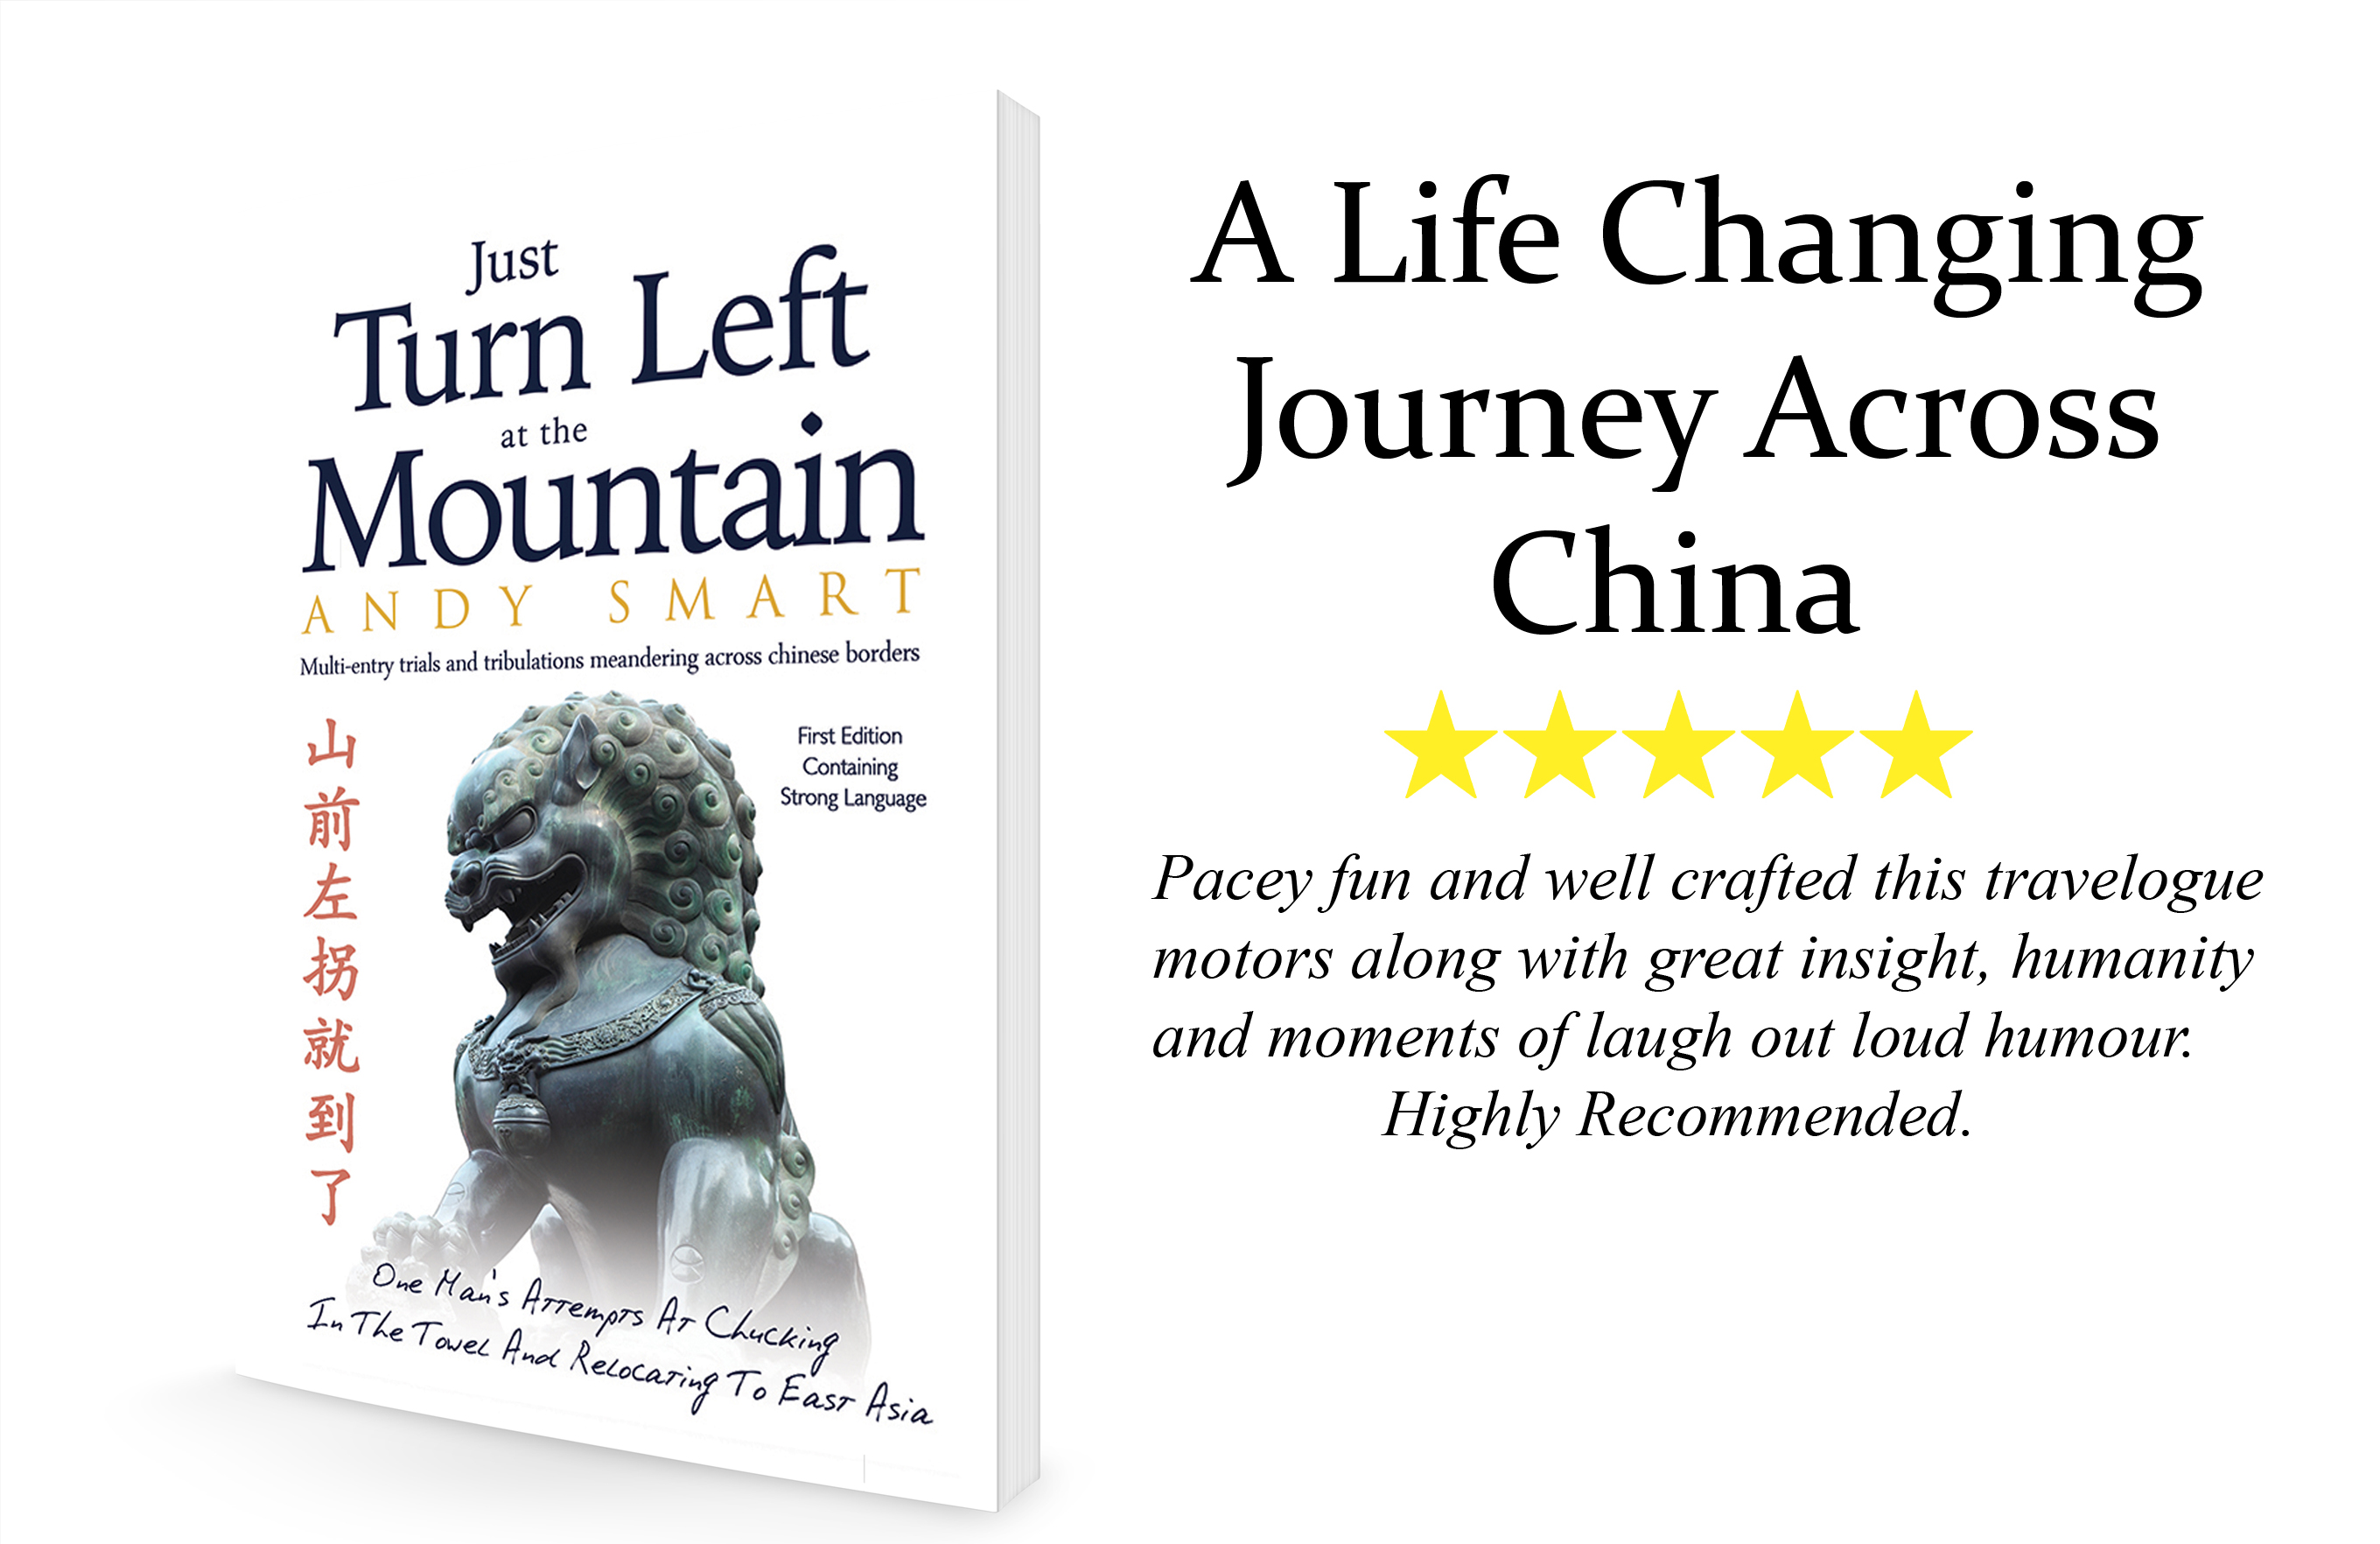 Just Turn Left at the Mountain: Multi Entry Trials and Tribulations Meandering Across Chinese Borders